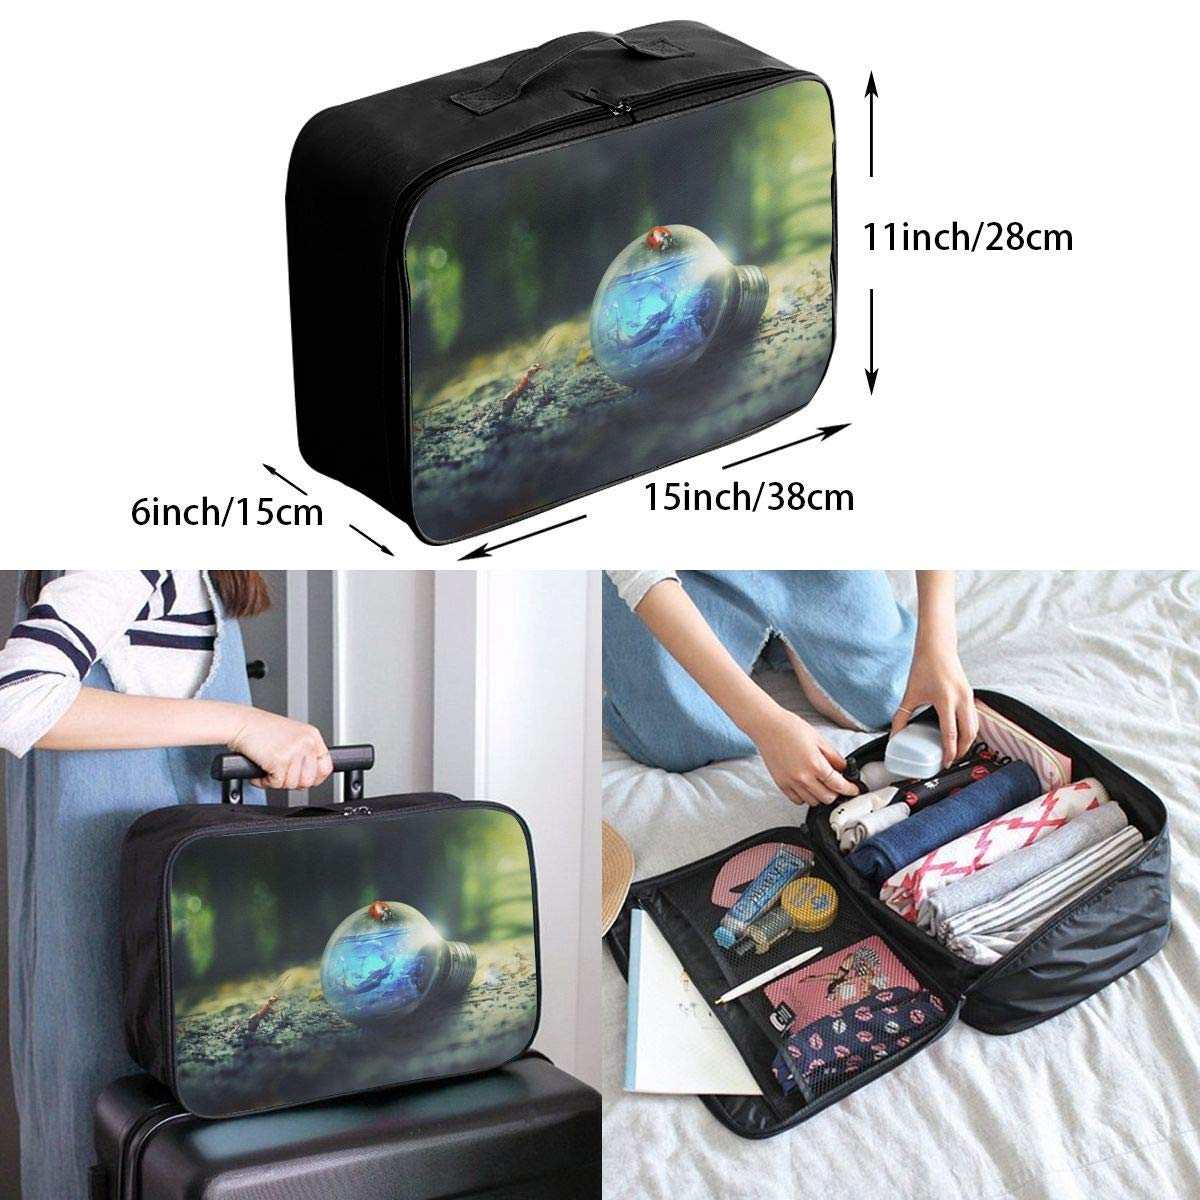 JTRVW Luggage Bags for Travel Lightweight Large Capacity Portable Duffel Bag for Men /& Women Old Camera And Photoes Travel Duffel Bag Backpack